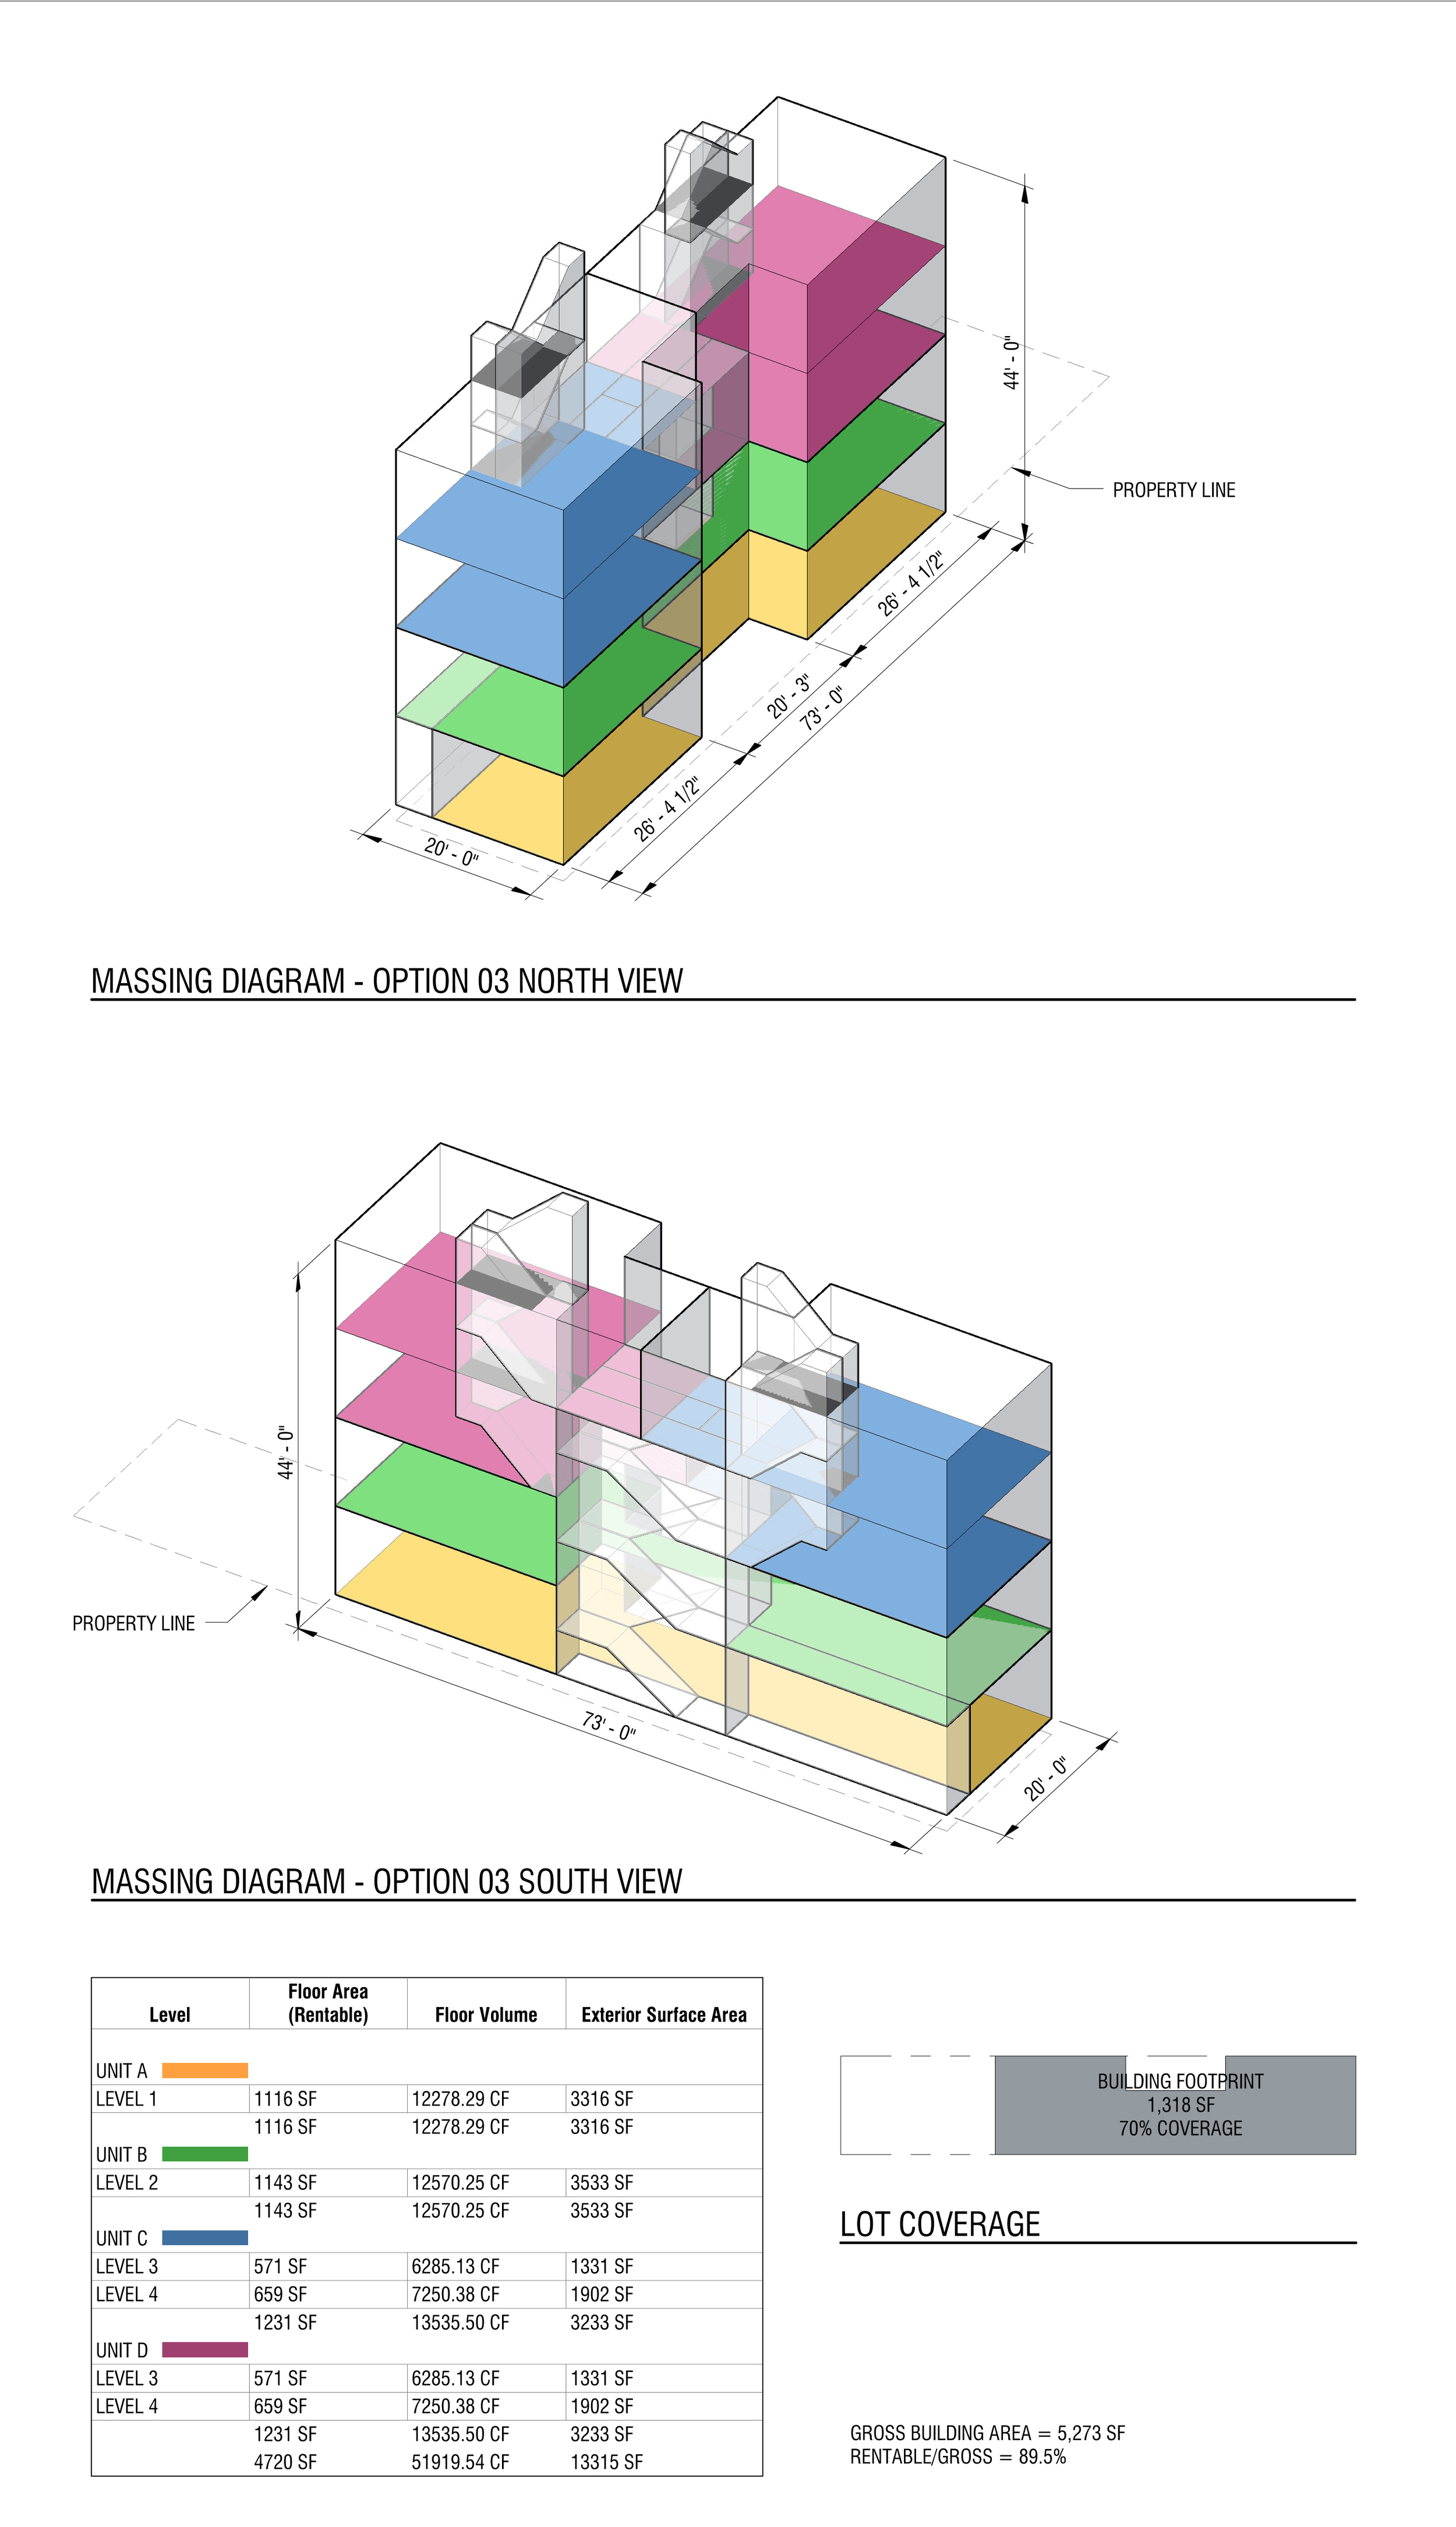 ^ This iteration maximizes the number of units. As a trade-off for the extra height, it minimizes the overall building lot coverage.